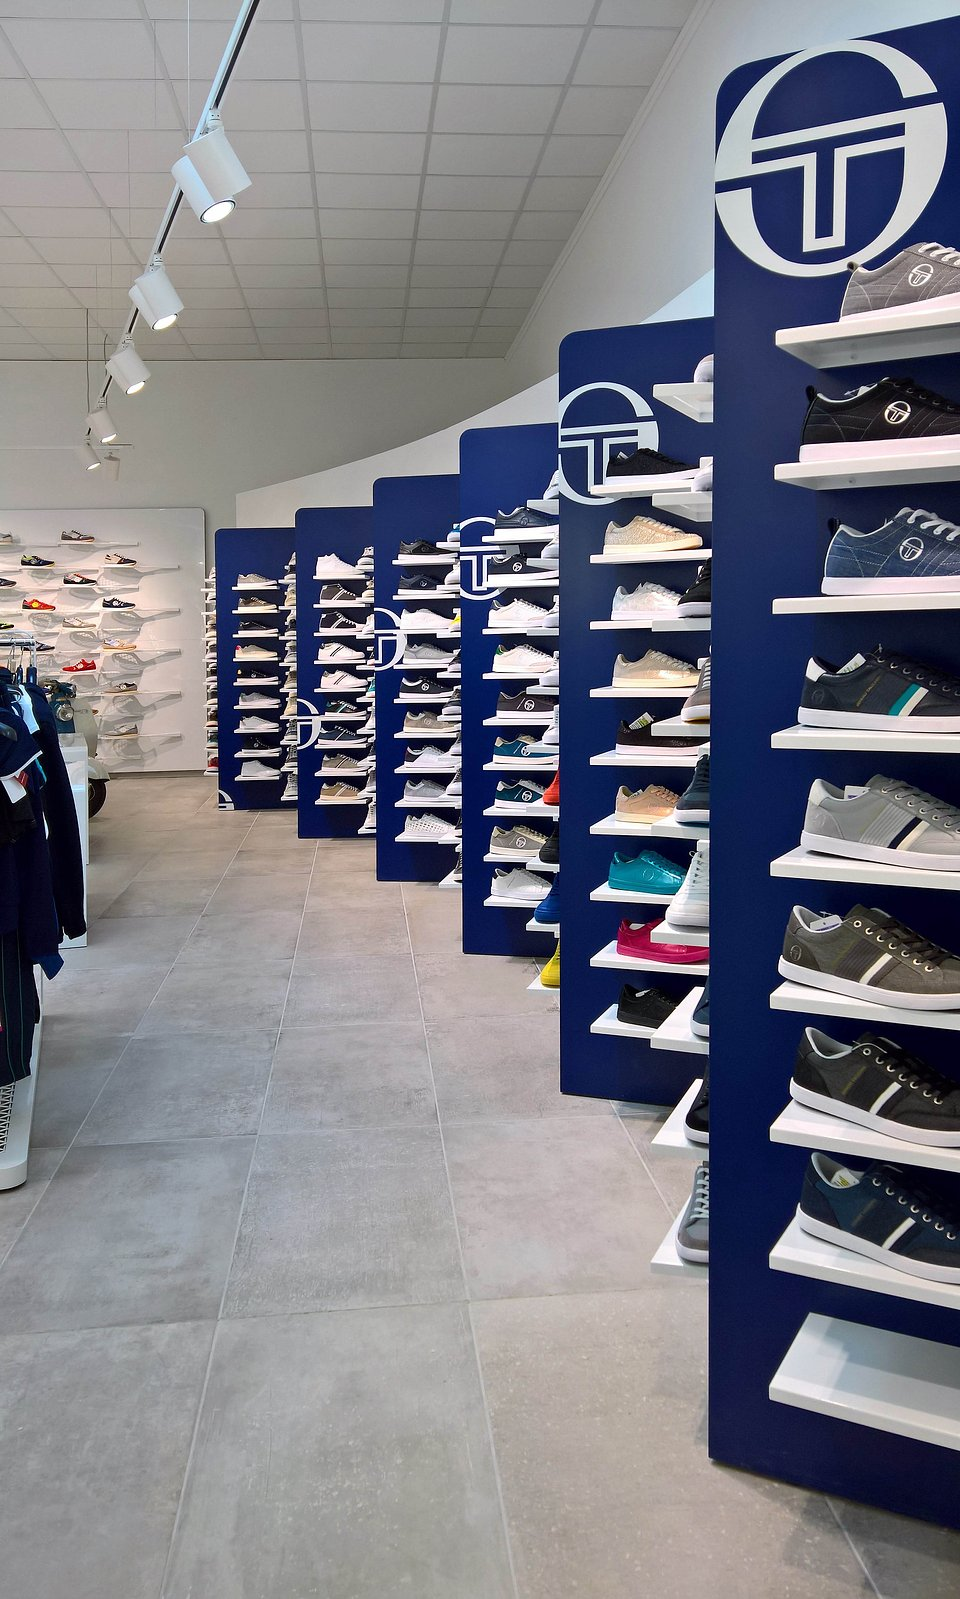 Sergio Tacchini show room by nz.A Studio (2).jpg